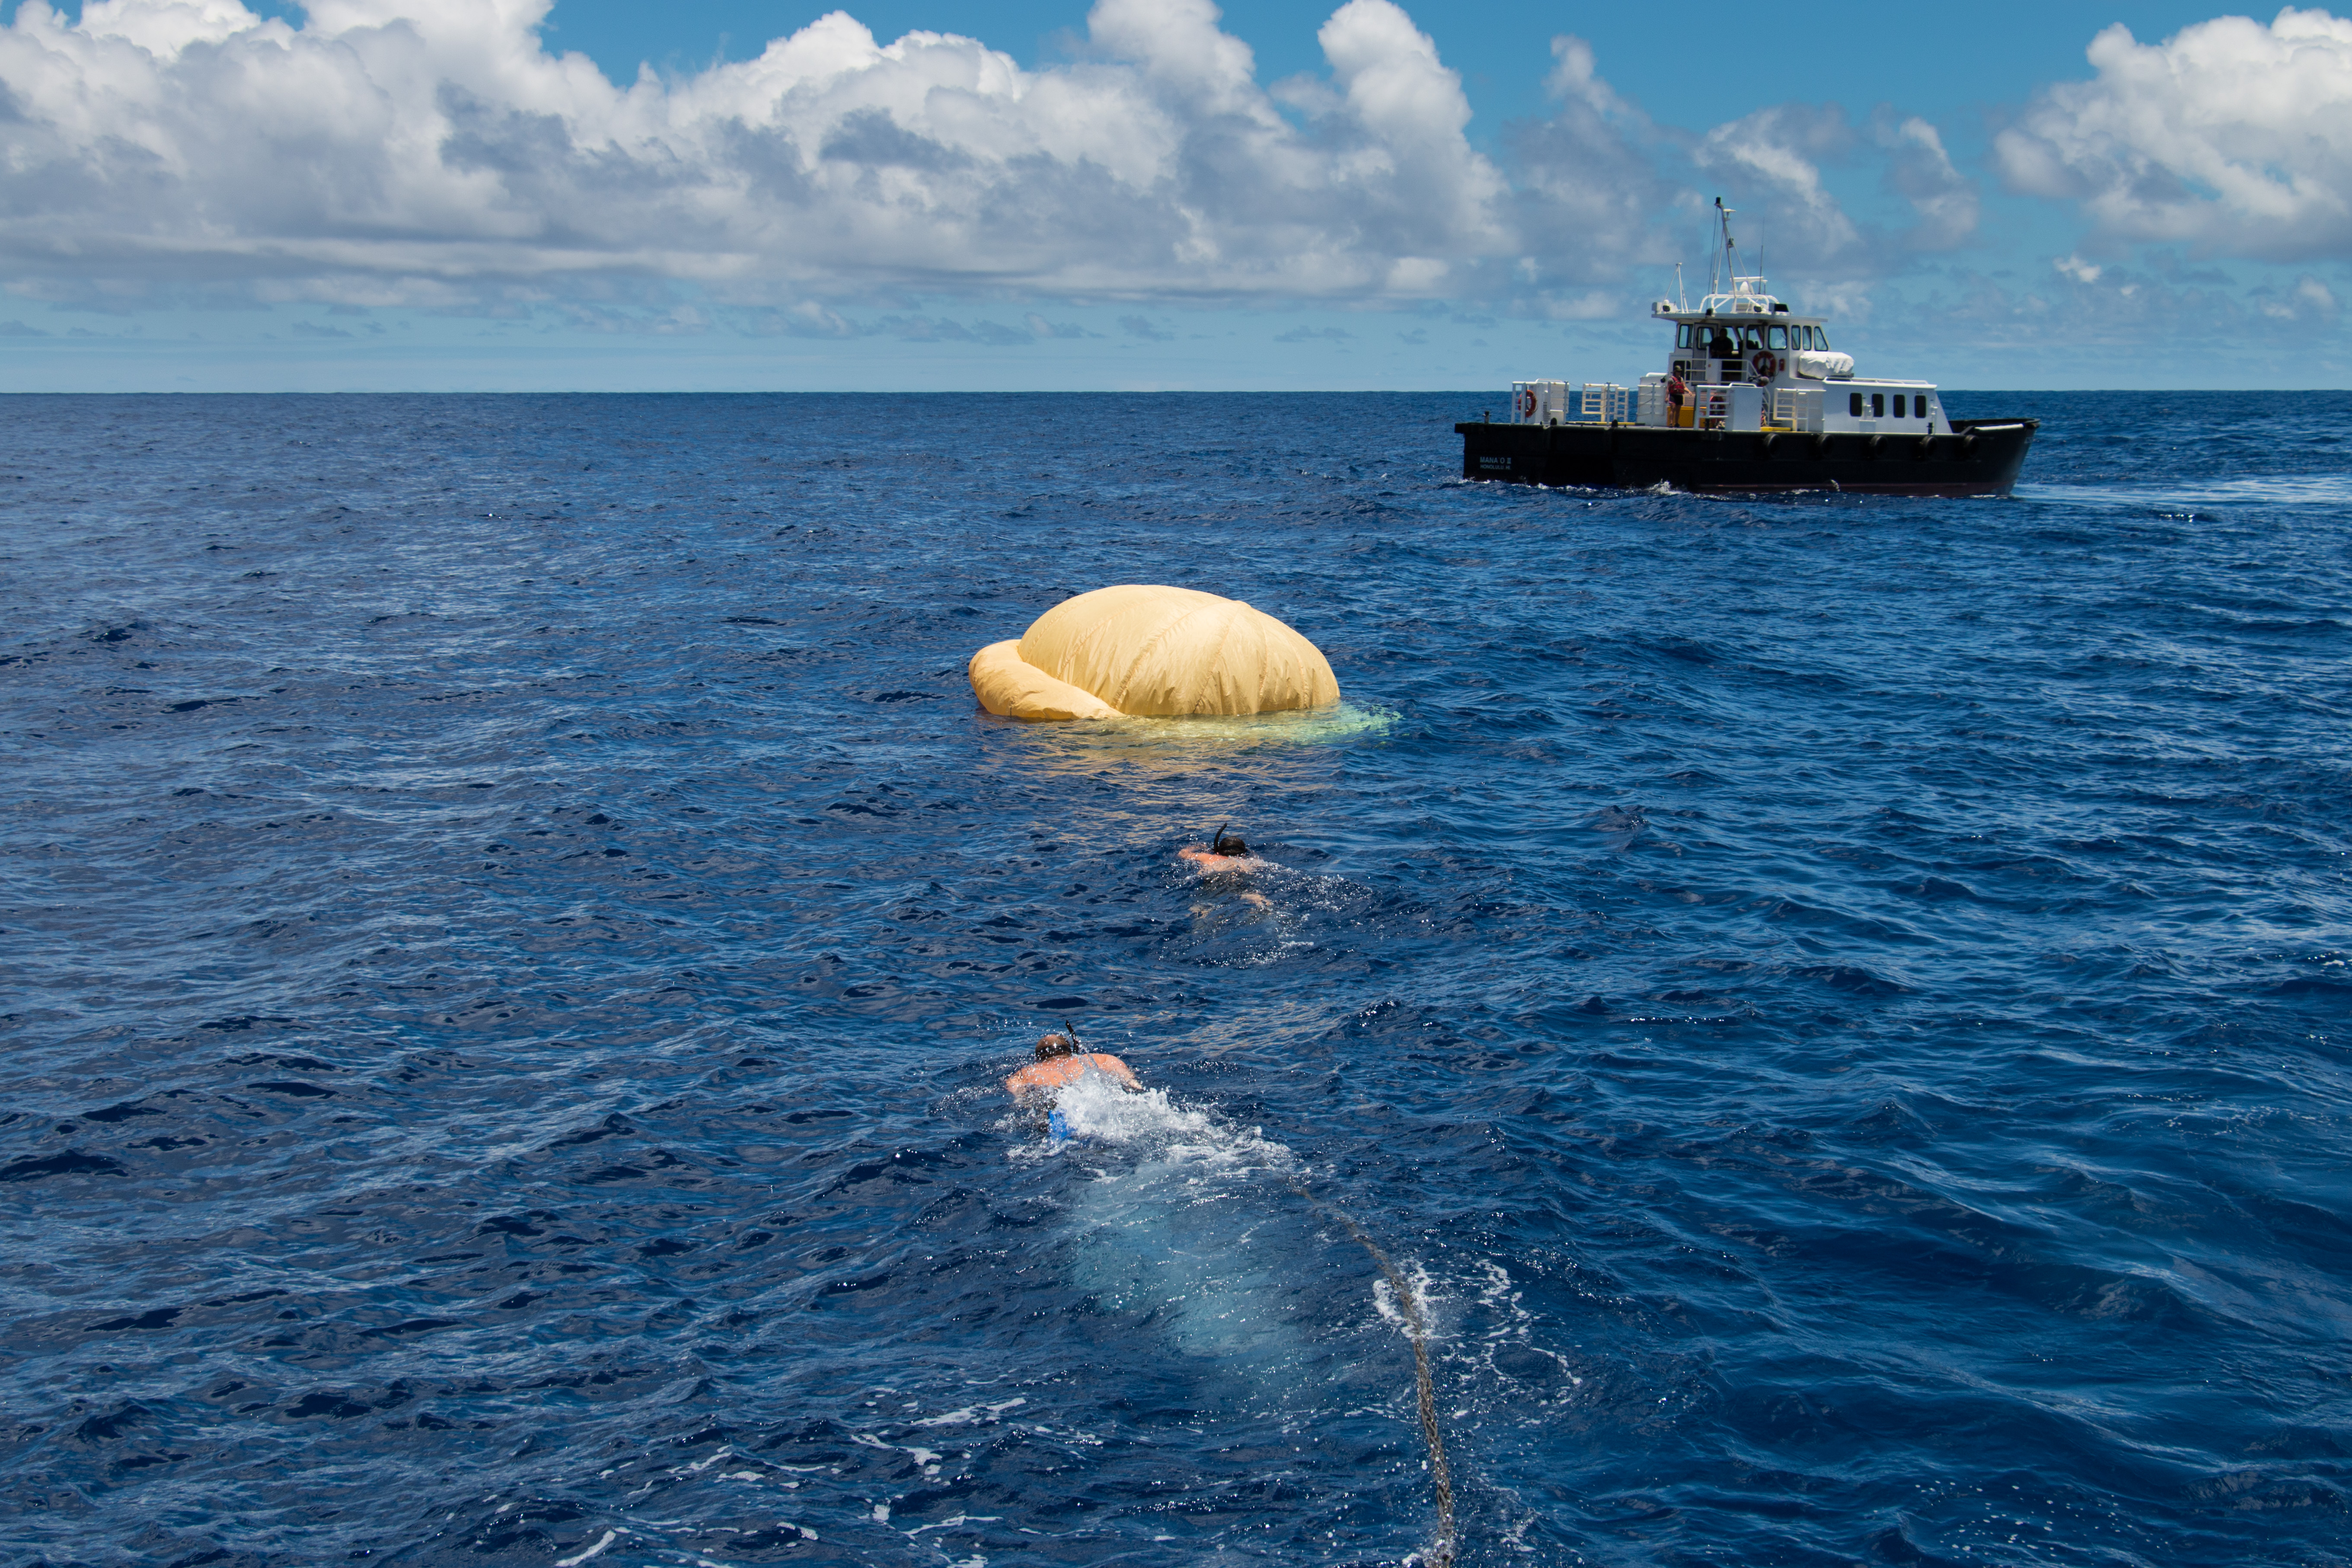 Two members of the Navy's Explosive Ordinance Disposal team swim towards the pilot ballute (a combination balloon and parachute used for braking at high altitudes and speeds) that was used to deploy the parachute. The recovery vessel Mana'o II is in the background. Image Credit: NASA/JPL-Caltech